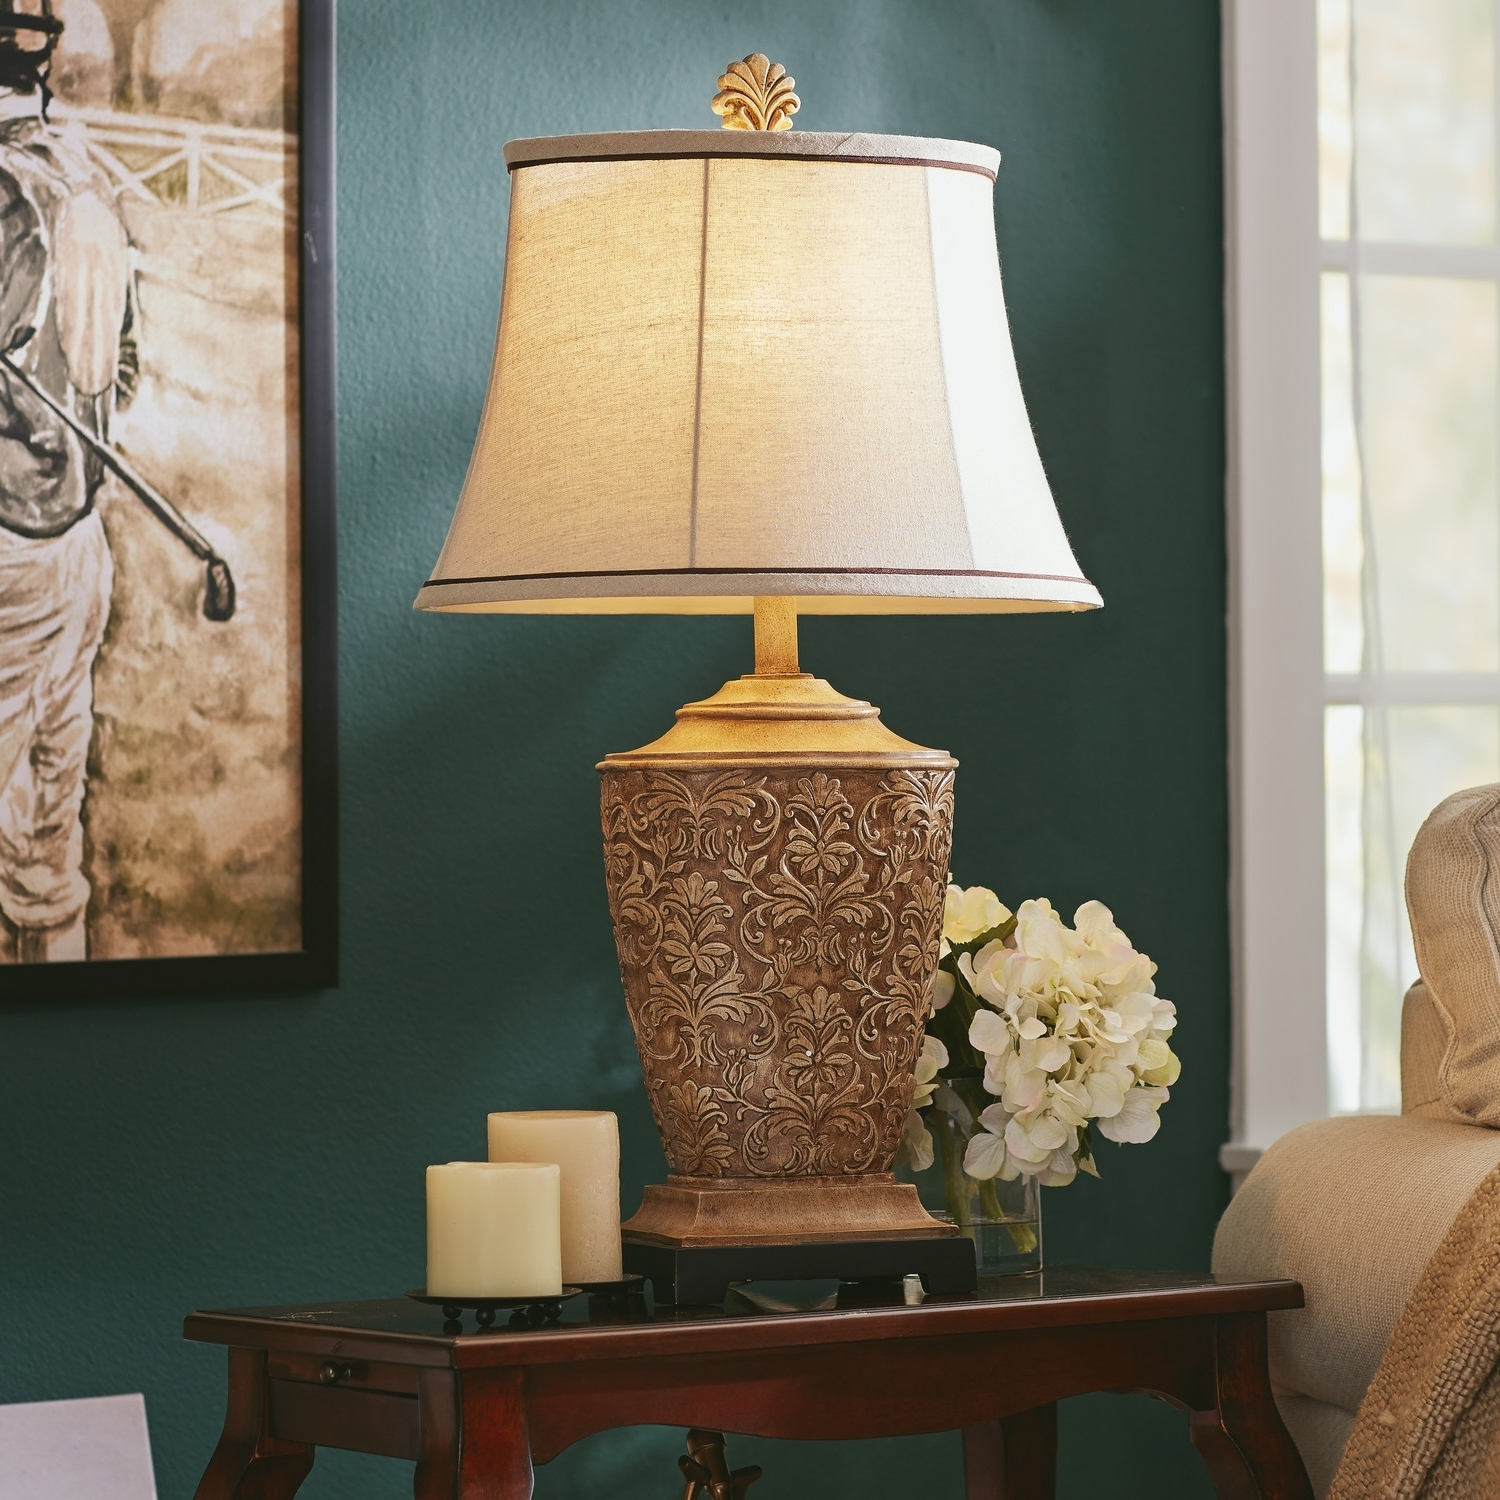 Large Living Room Lamps Beautiful Lamp Astounding Living Room Light With Regard To Most Popular Large Living Room Table Lamps (View 6 of 15)